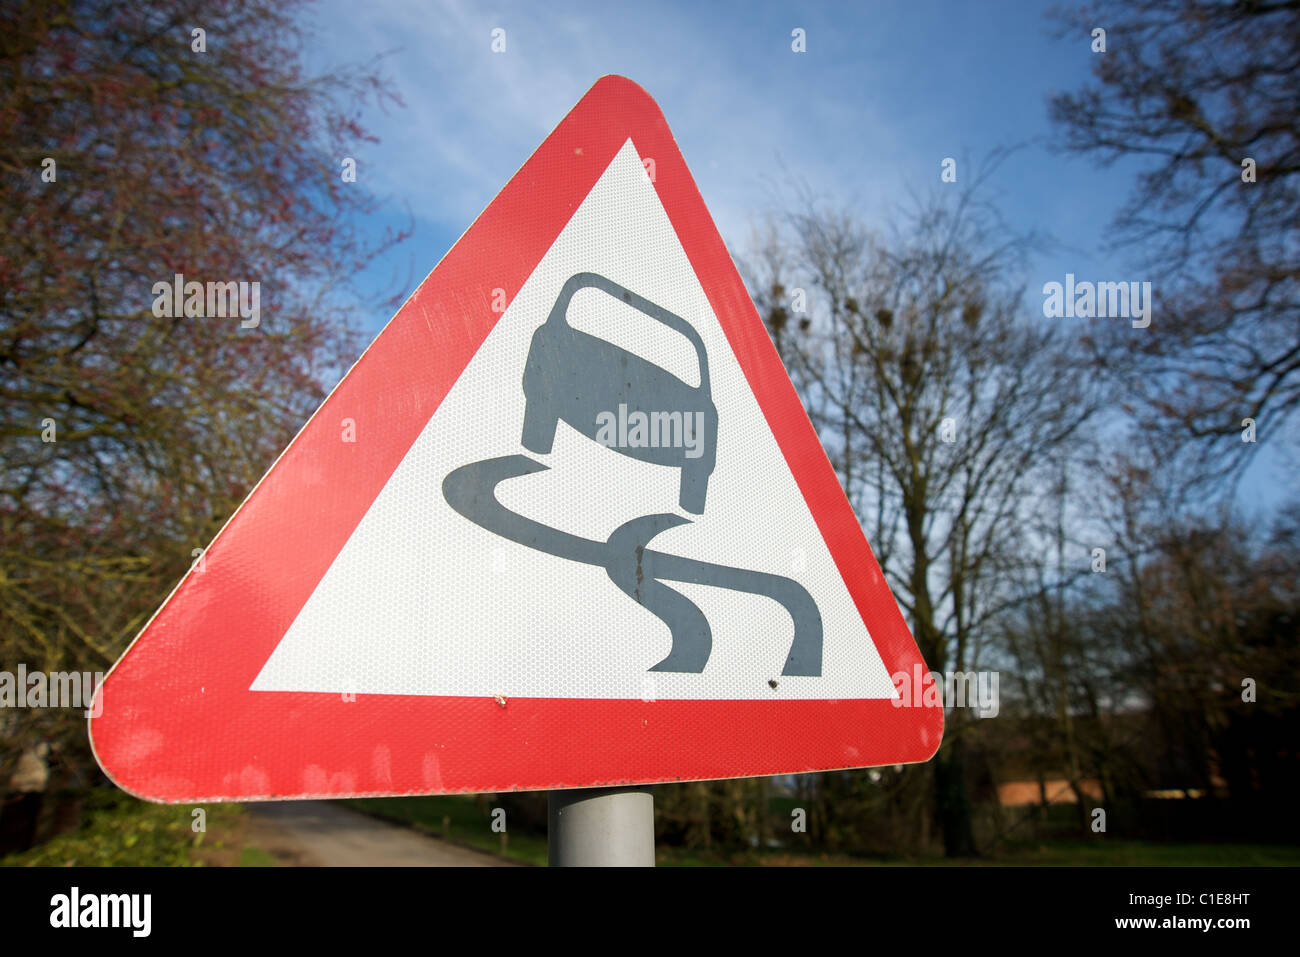 A road sign warning of a slippery road ahead, Warwickshire, England, UK Stock Photo